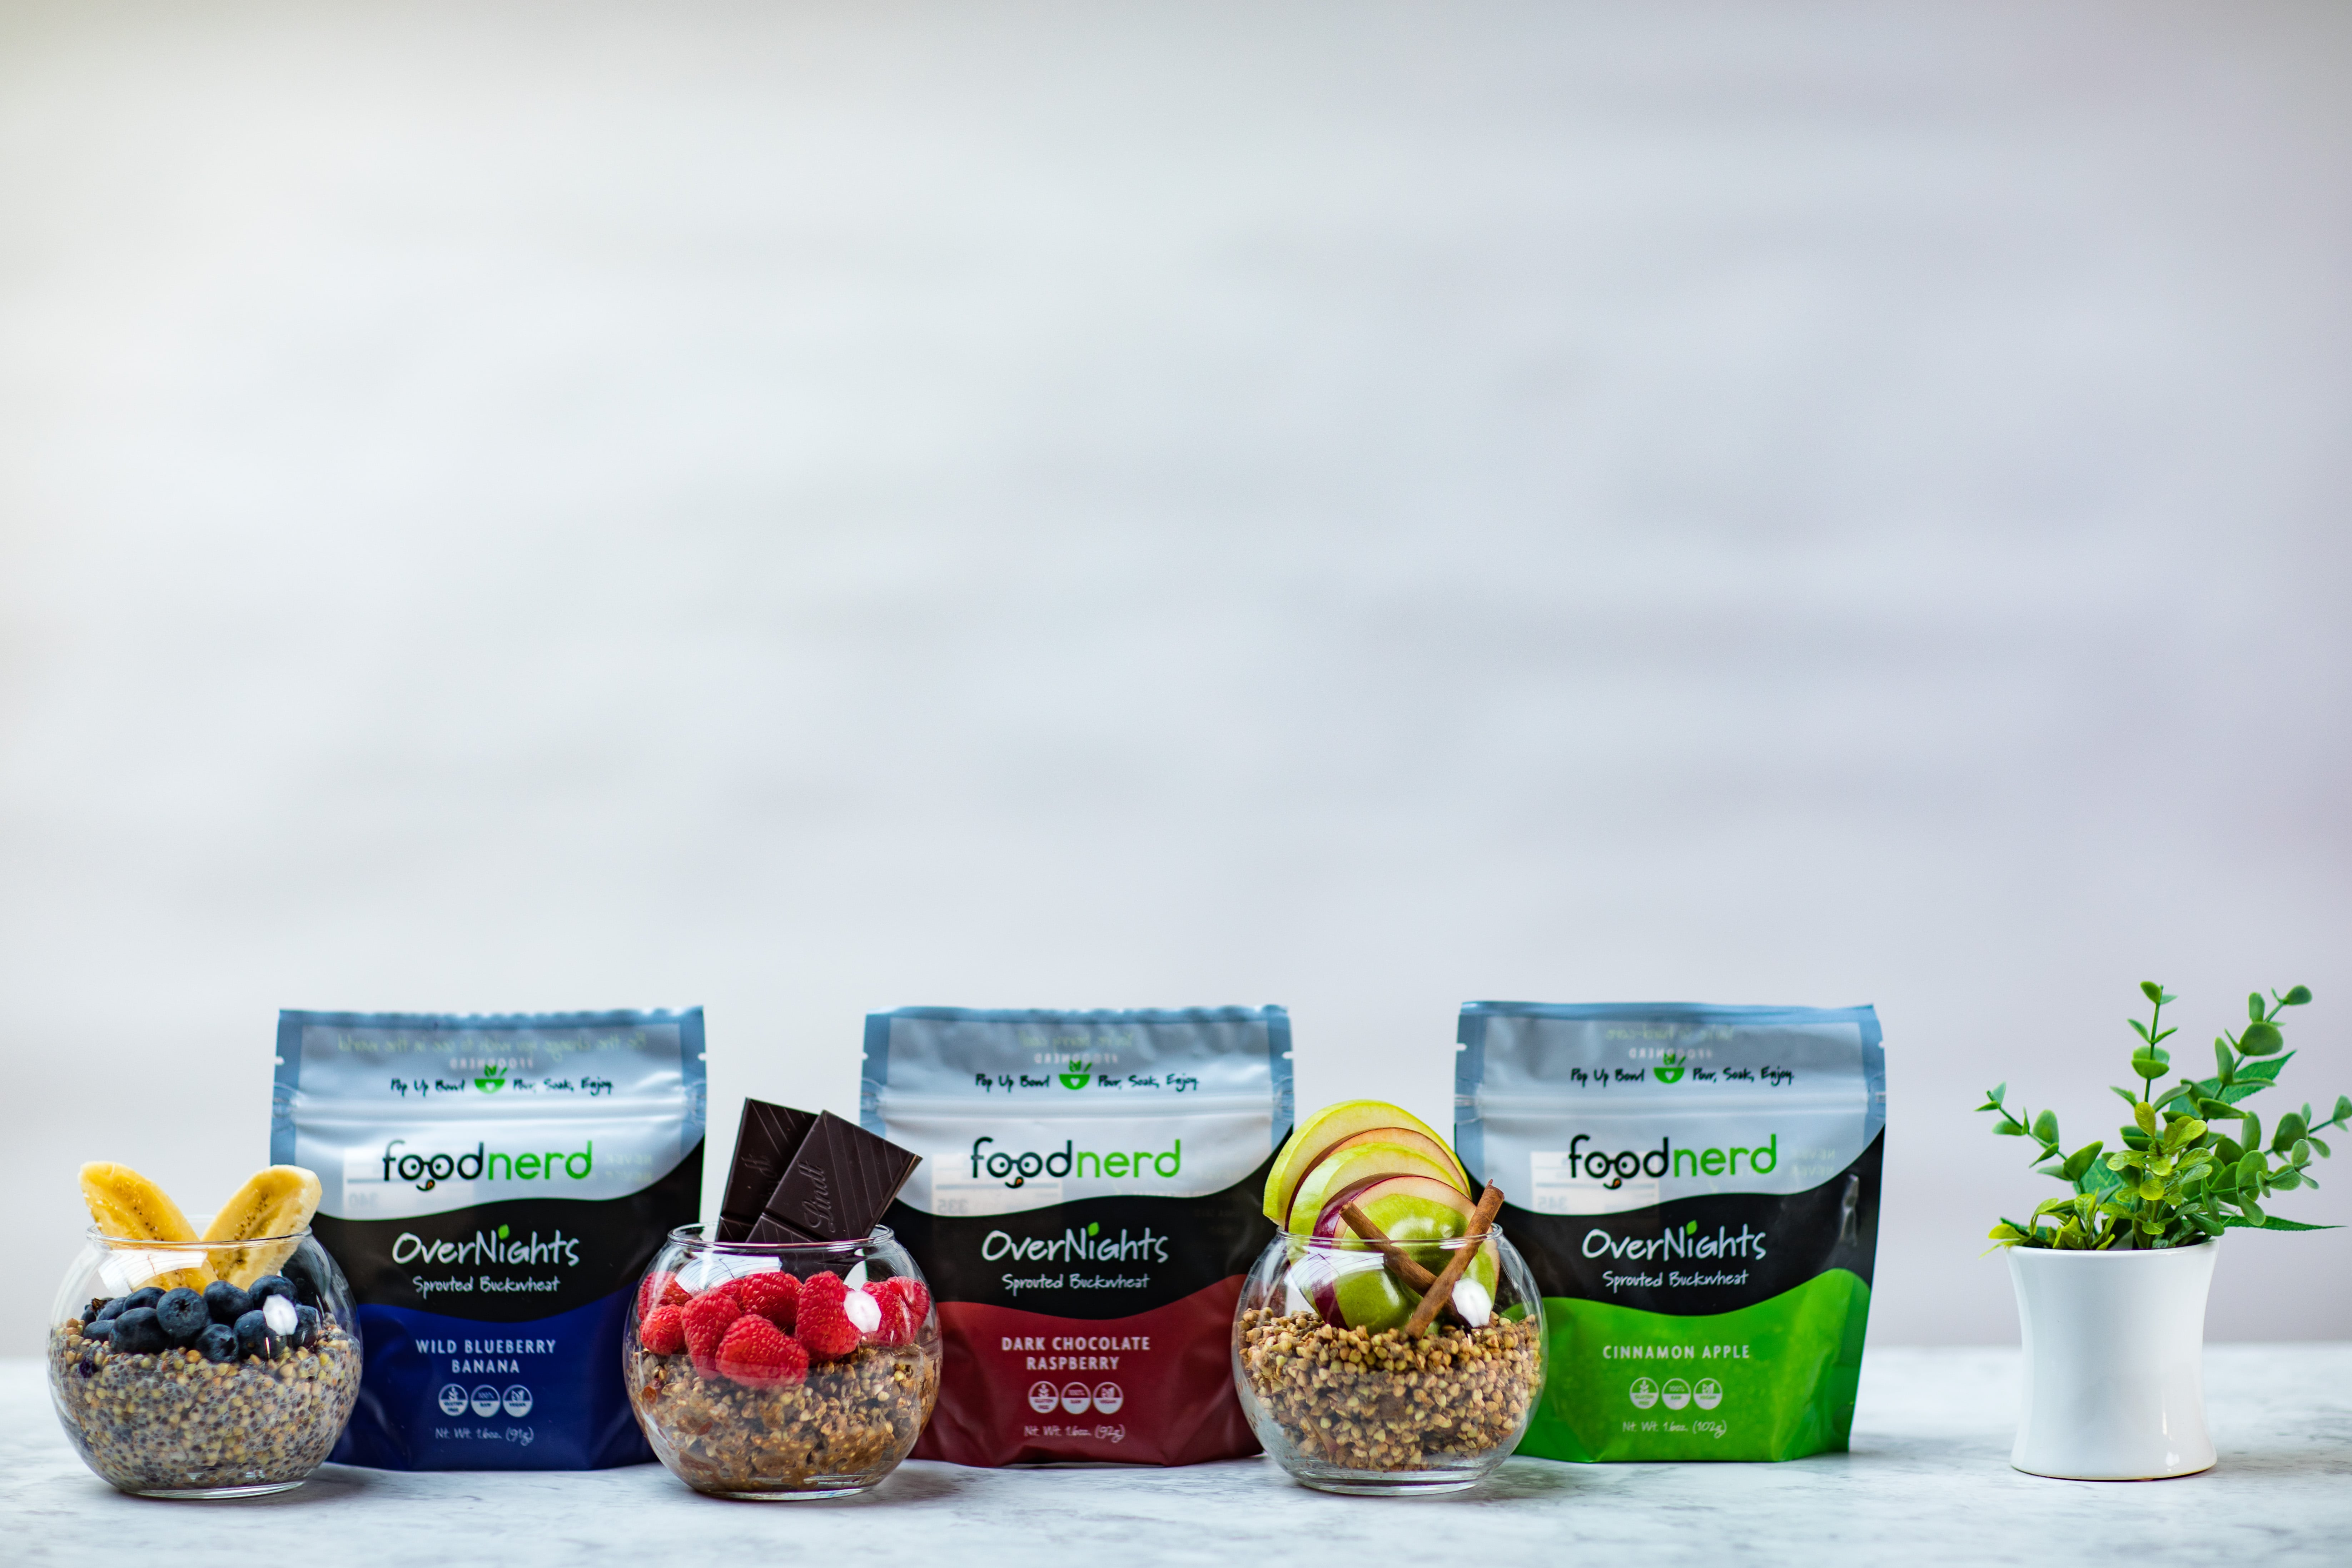 Foodnerd Launches Sprouted Overnight Buckwheat Breakfasts for Athletes and Fitness Enthusiasts